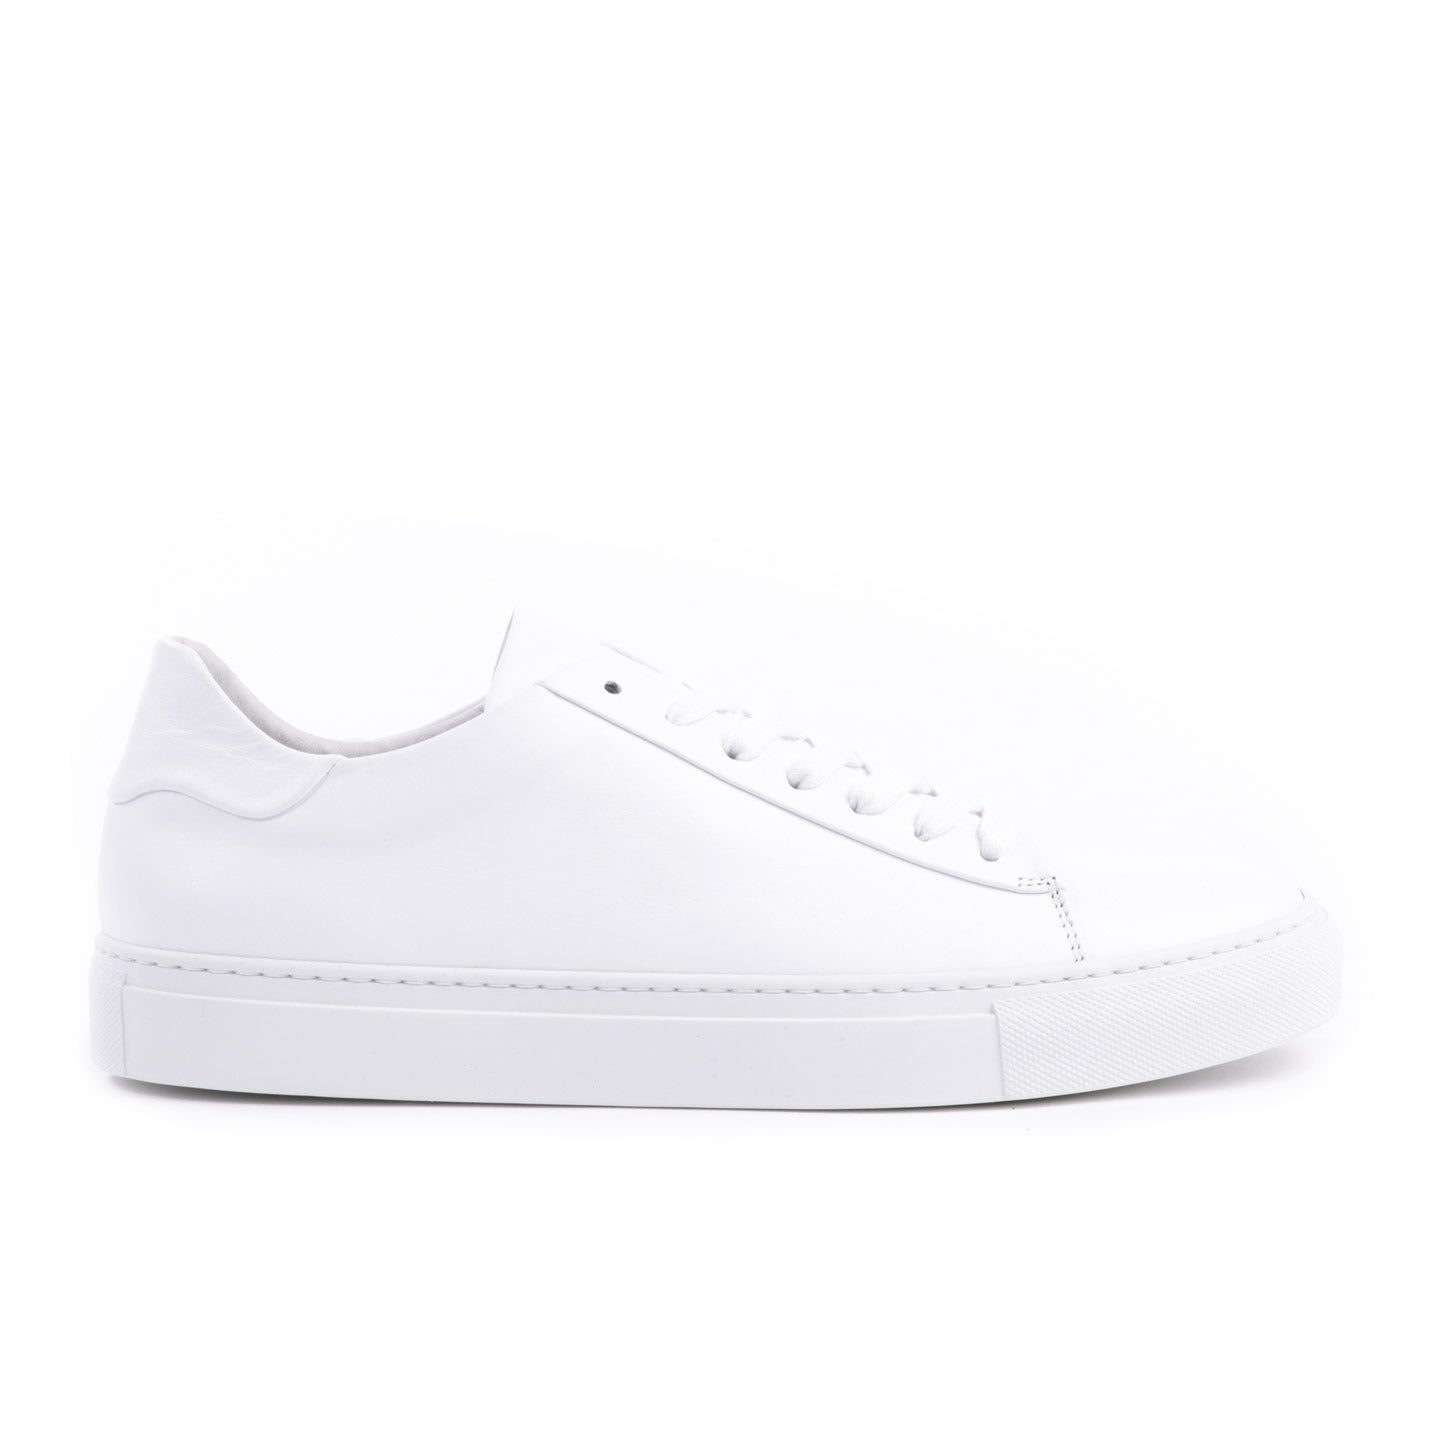 WINGS + HORNS COURT LOW SOFTY LEATHER